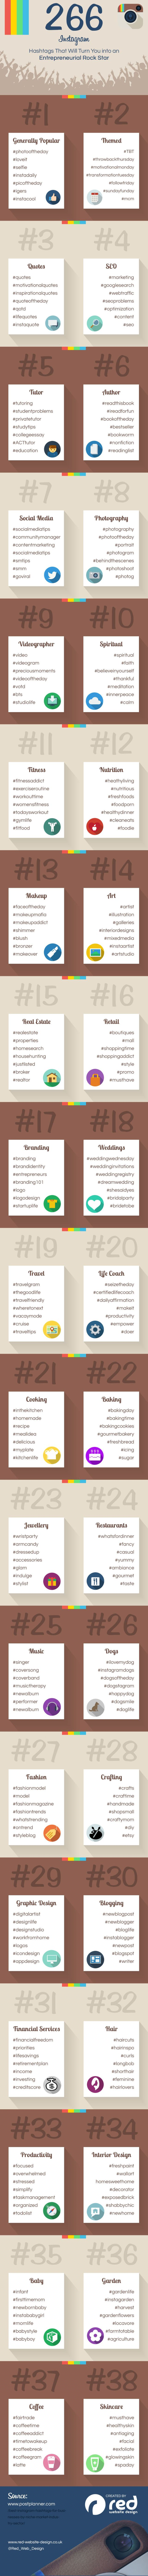 Hashtags to help you get likes and grow your Instagram following                                                                                                                                                                                 Mehr